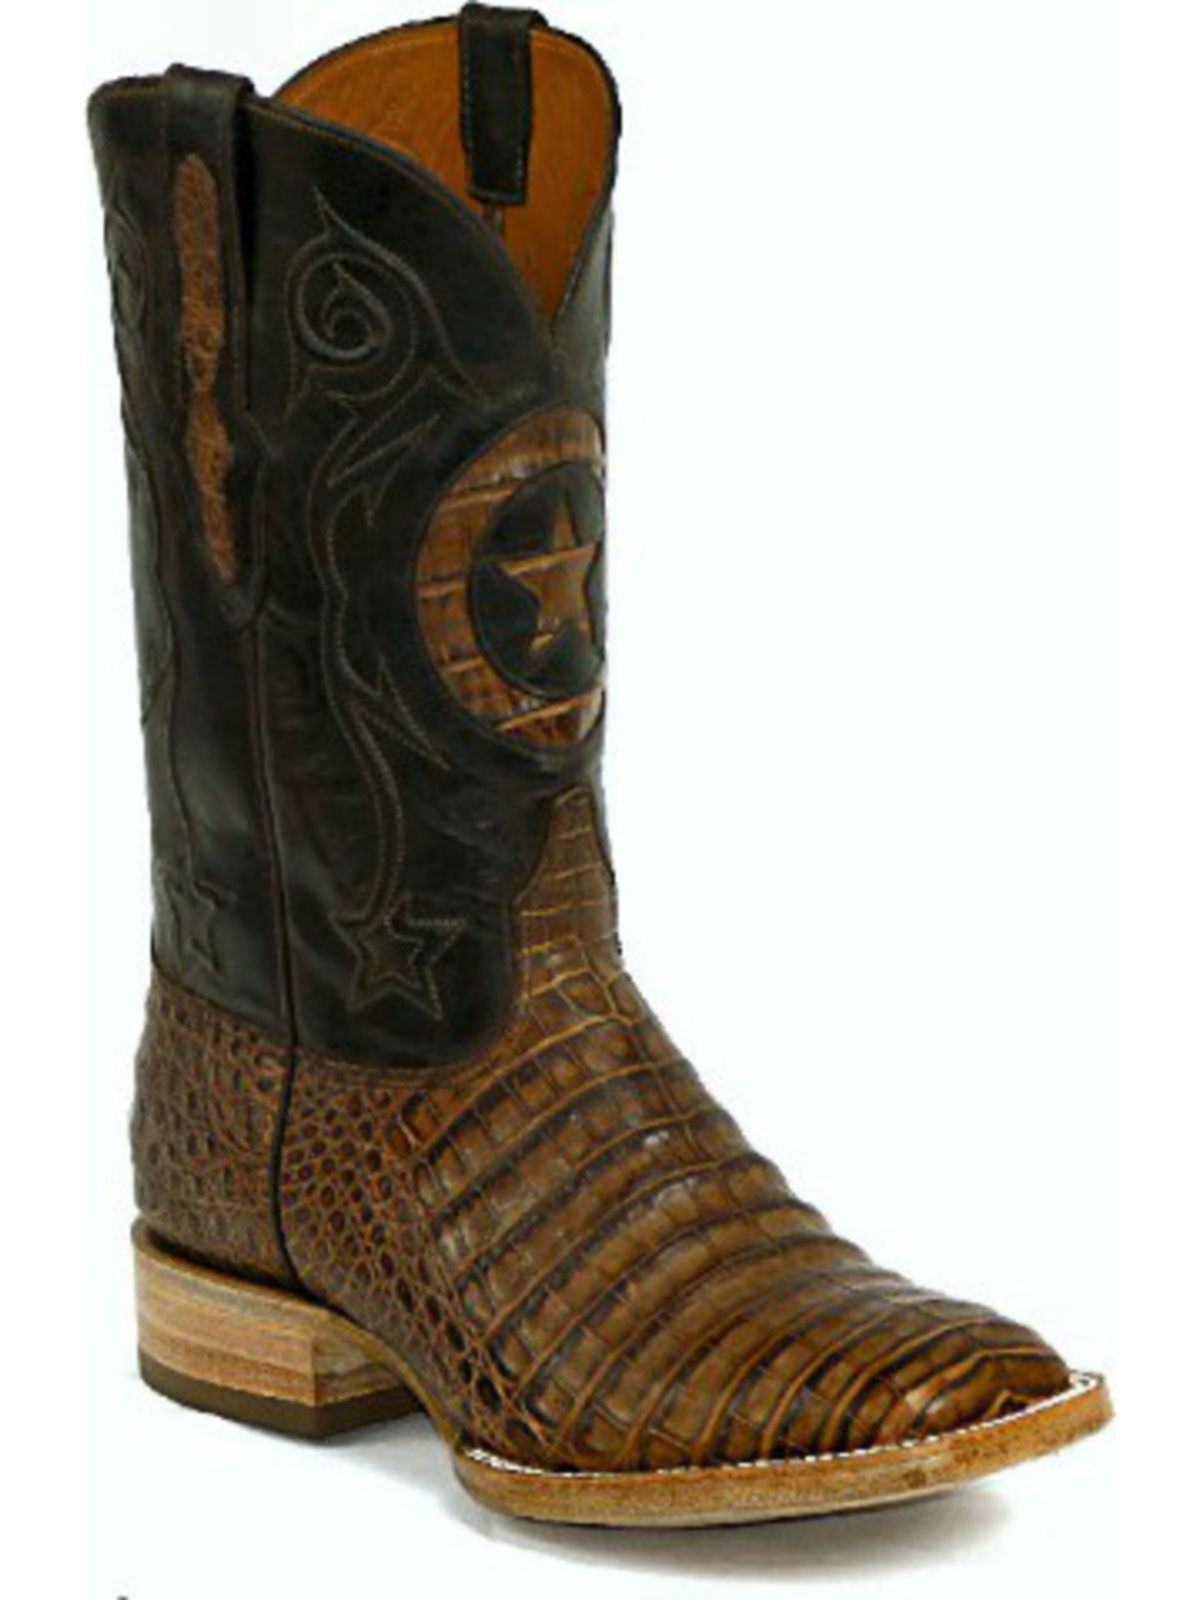 Bootamerica Black Jack Boots Lone Star Inlay Caiman Belly Burnished Brown 250